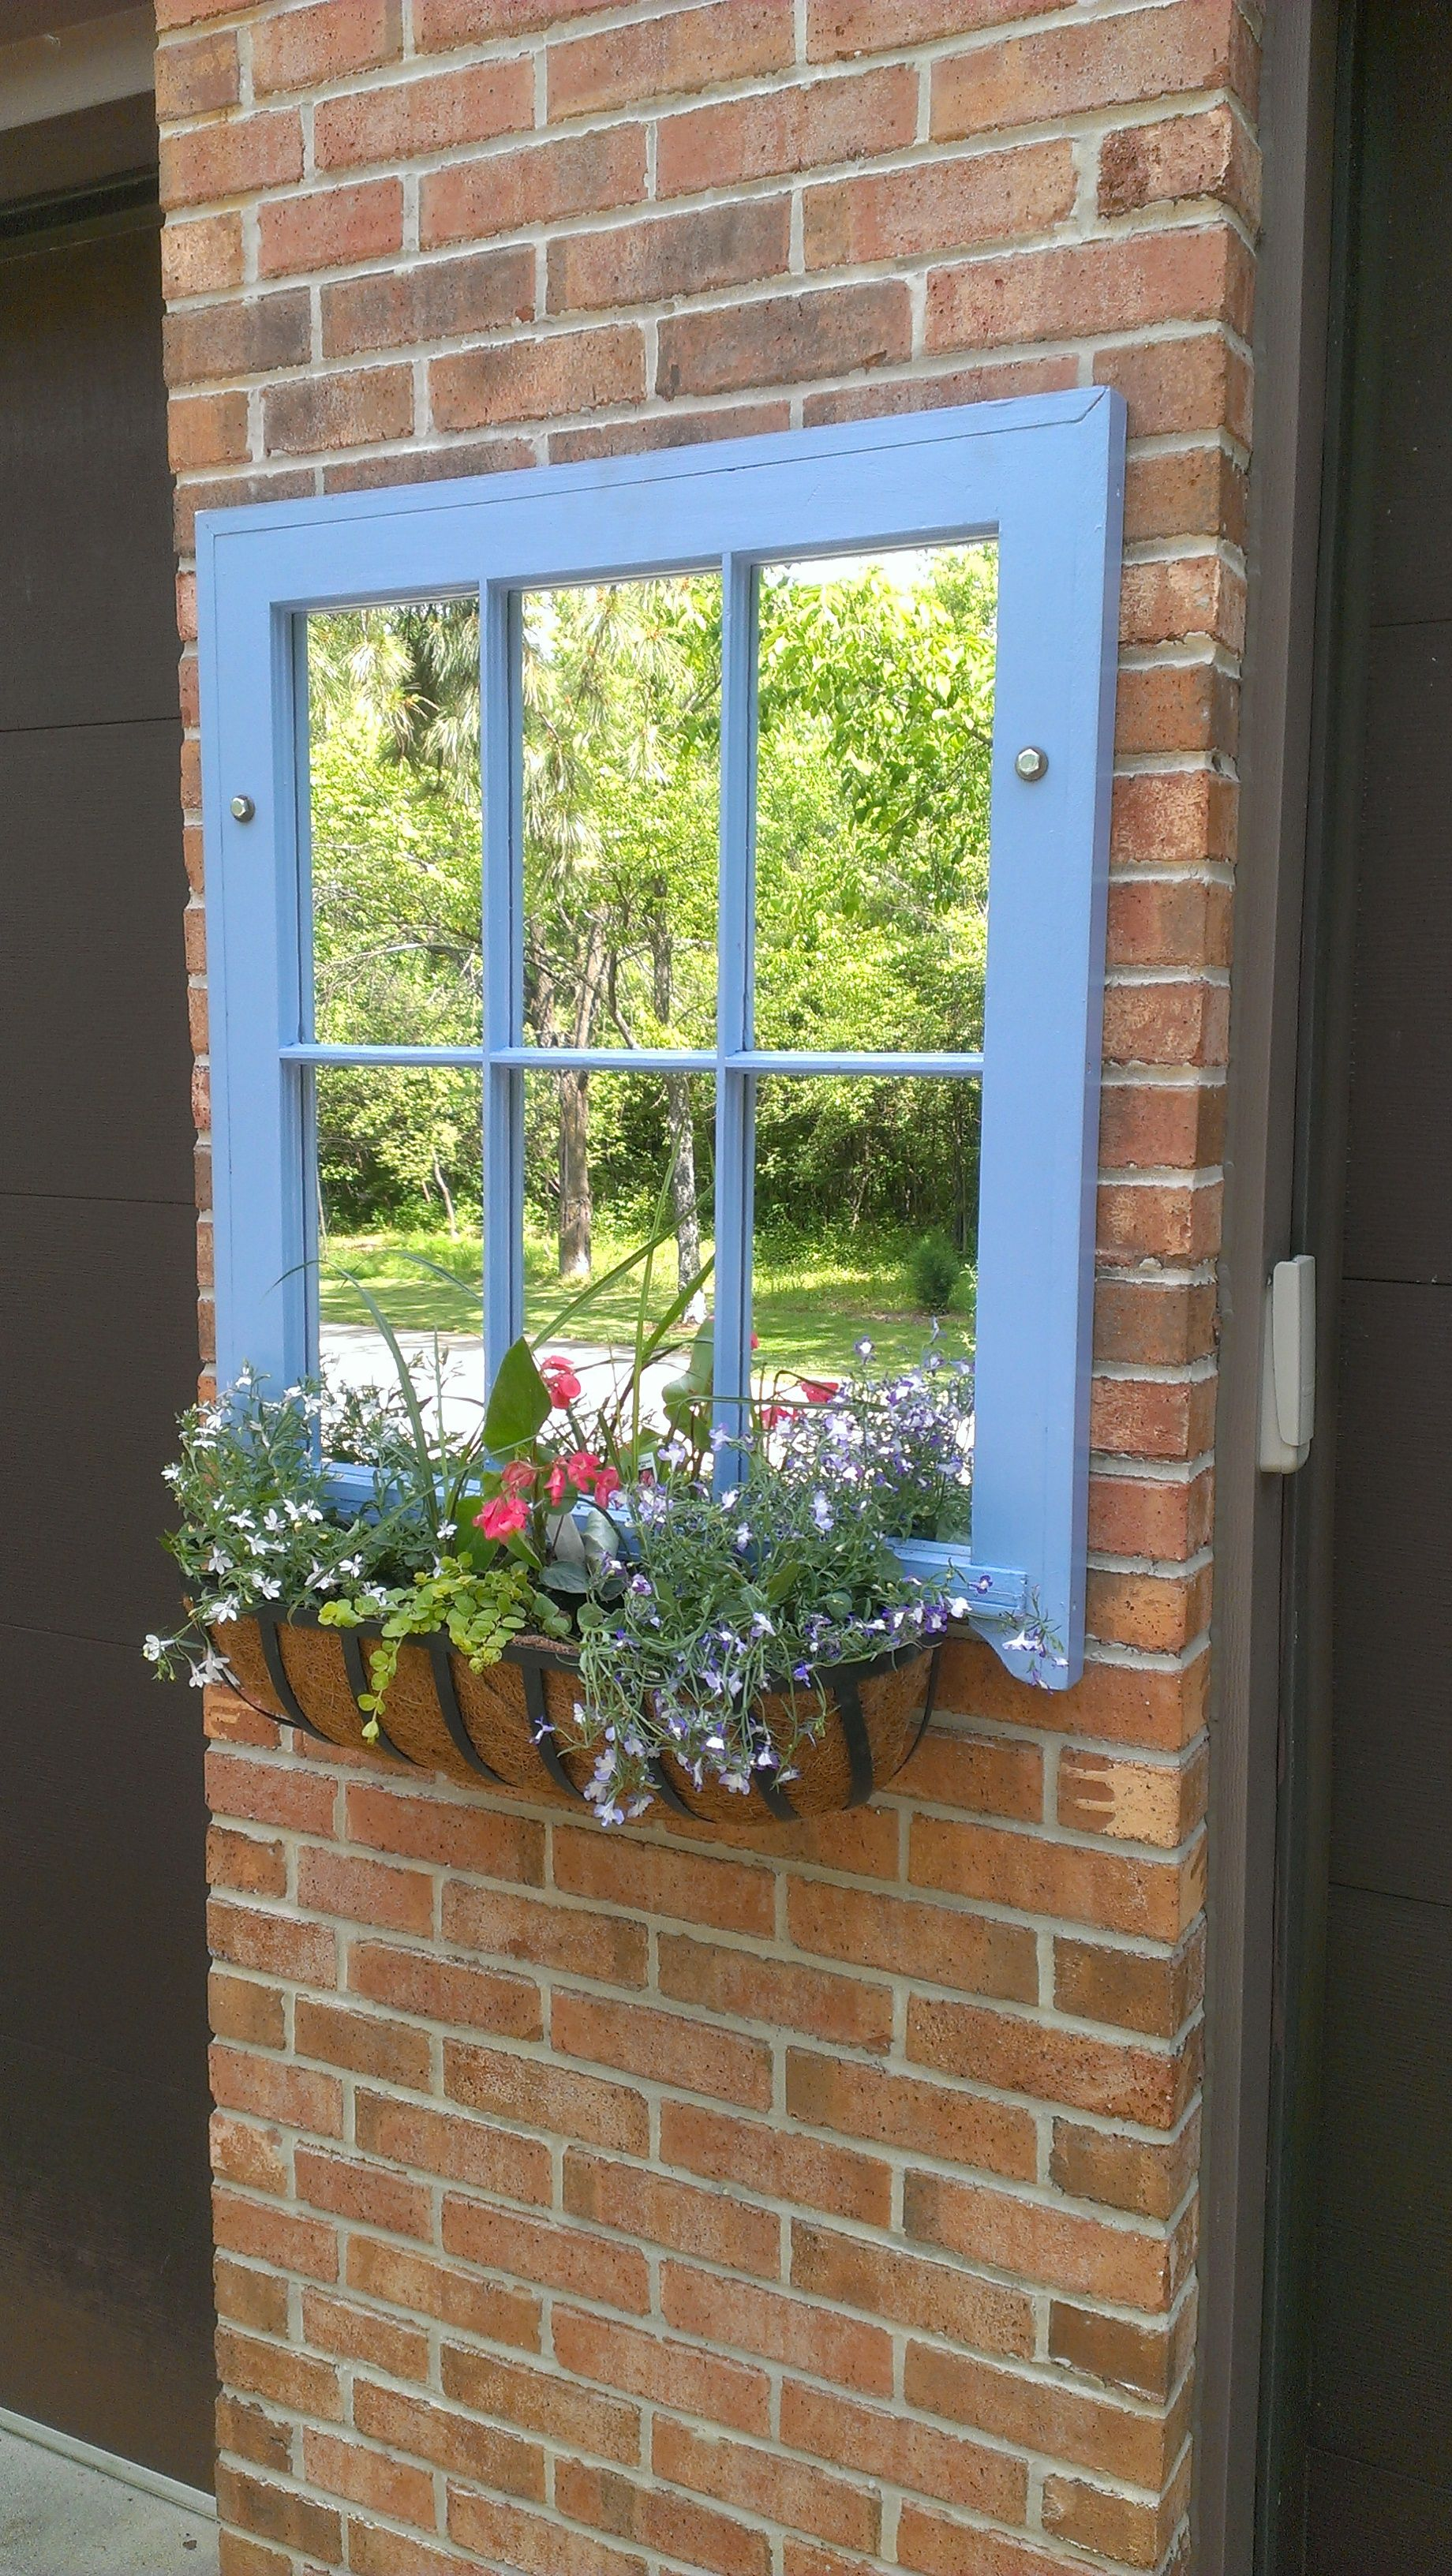 Salvaged old wooden window sash turned into